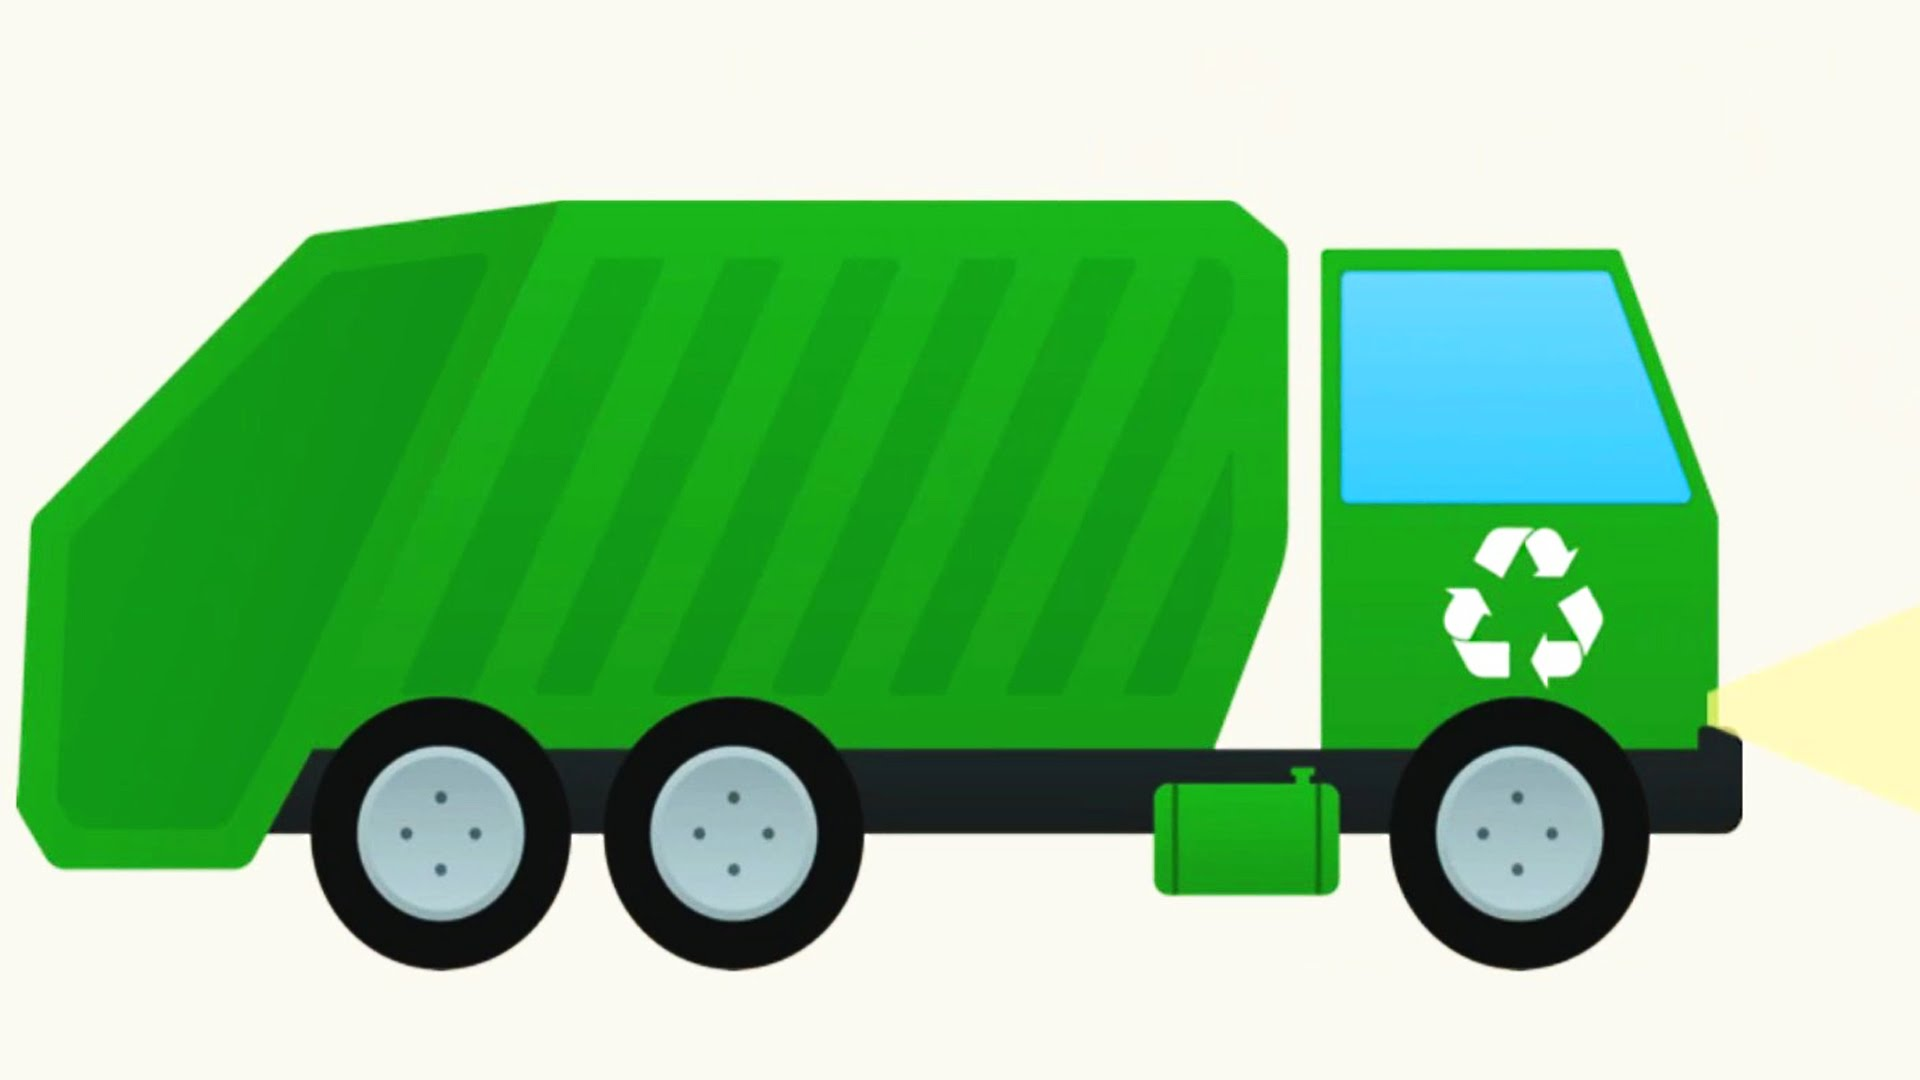 Truck clipart garbage truck. Free download best on